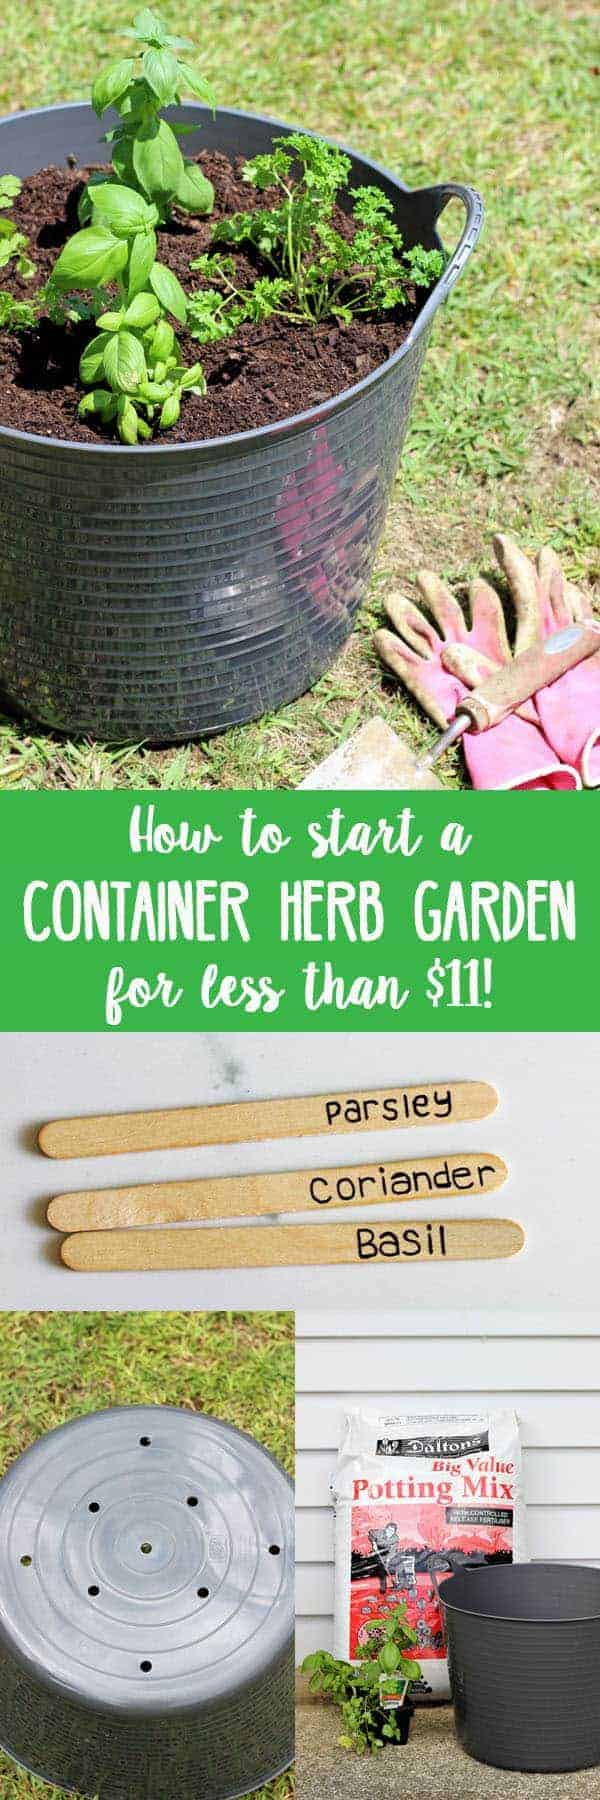 How to start a herb garden for less than $11. Full tutorial on the materials you need, how long it will take and a few handy hints about growing herbs. #garden #herbs #growyourown #homesteading #gardening | thekiwicountrygirl.com